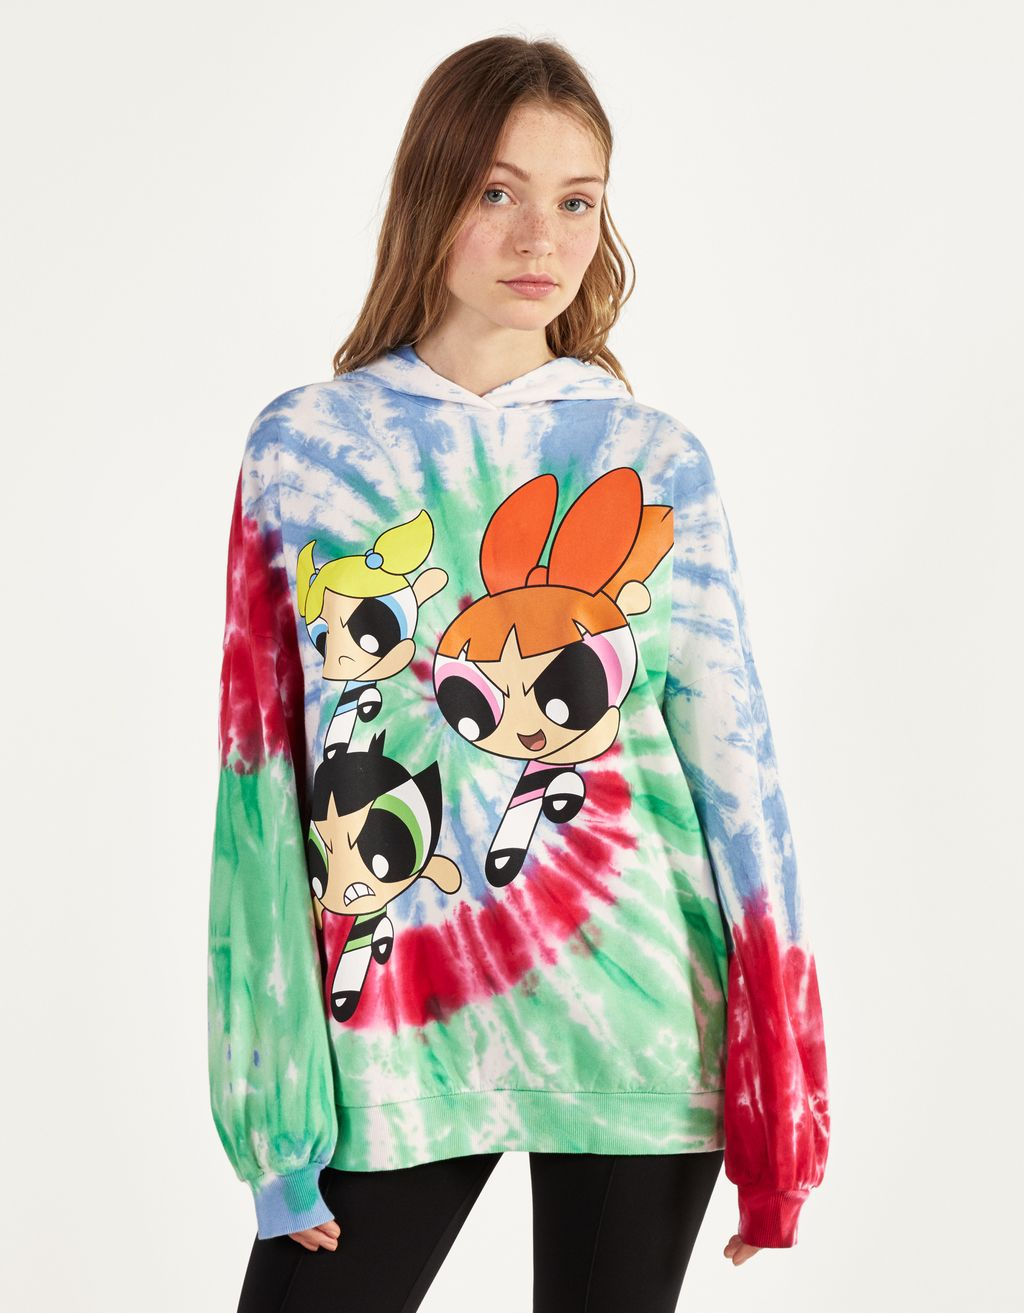 Φούτερ The Powerpuff Girls x Bershka